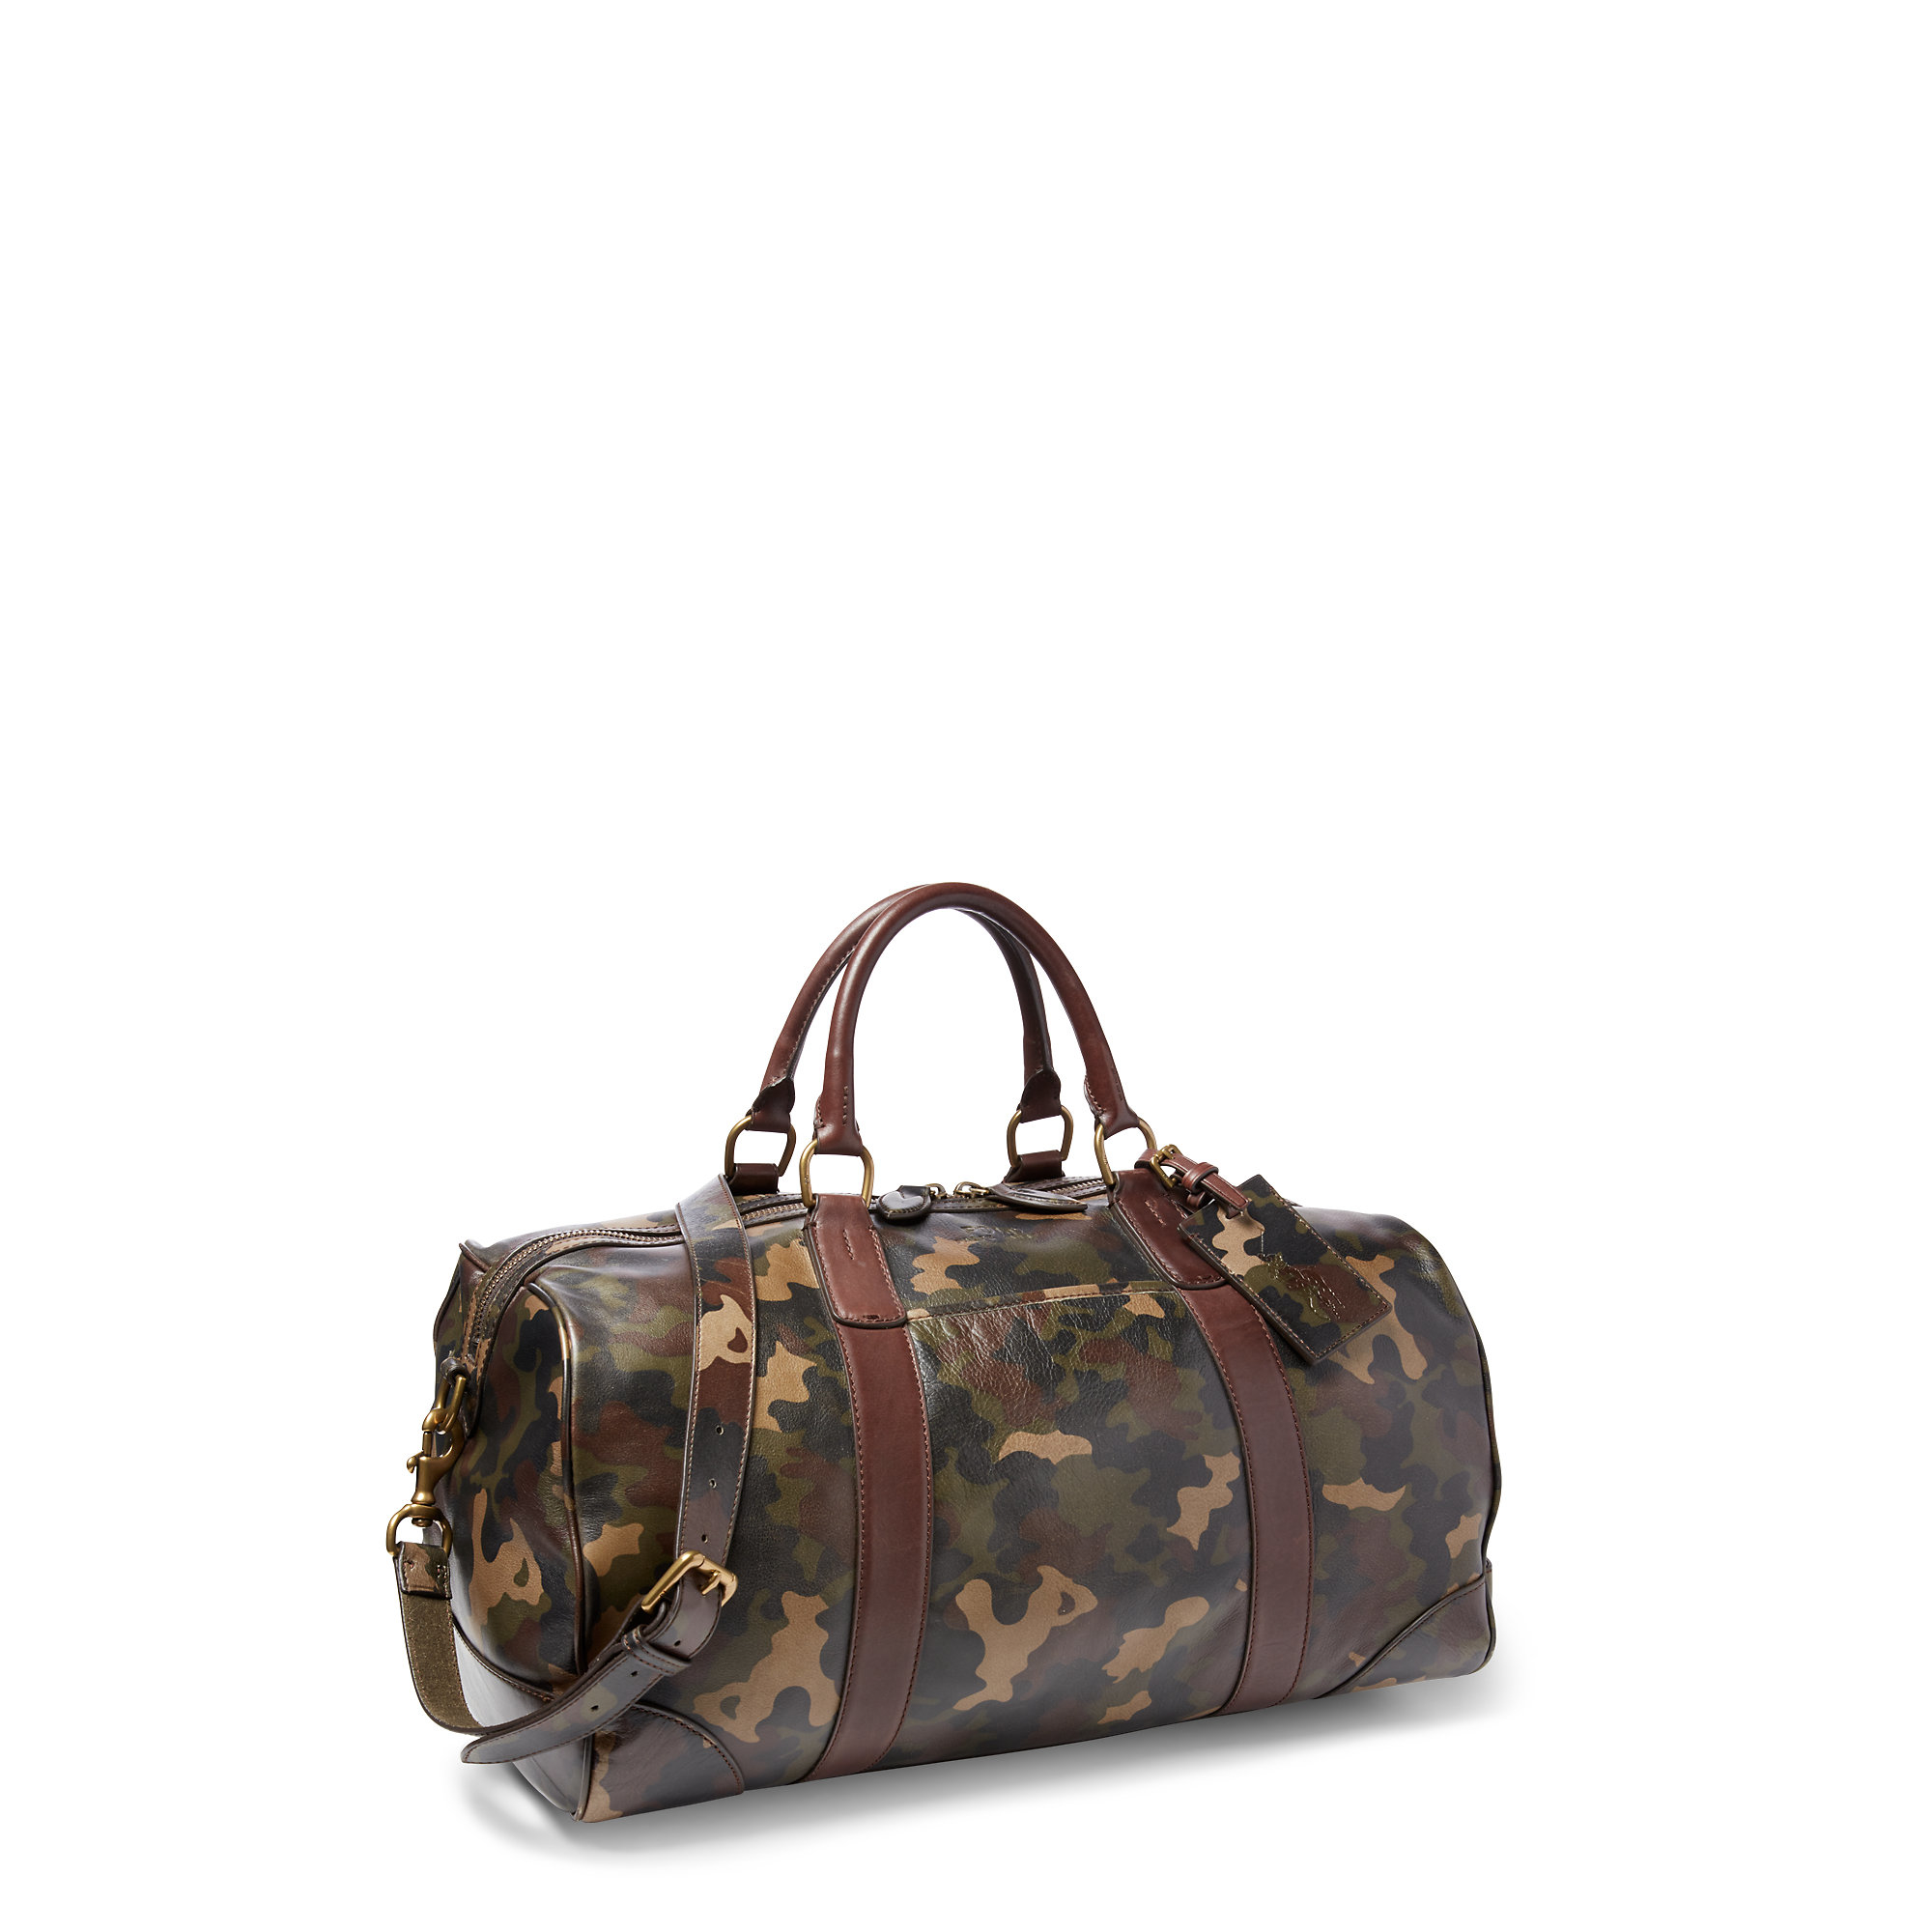 2d9e8cd7b0 ... germany lyst polo ralph lauren camouflage leather duffel bag in gray  for men c8e8a b1047